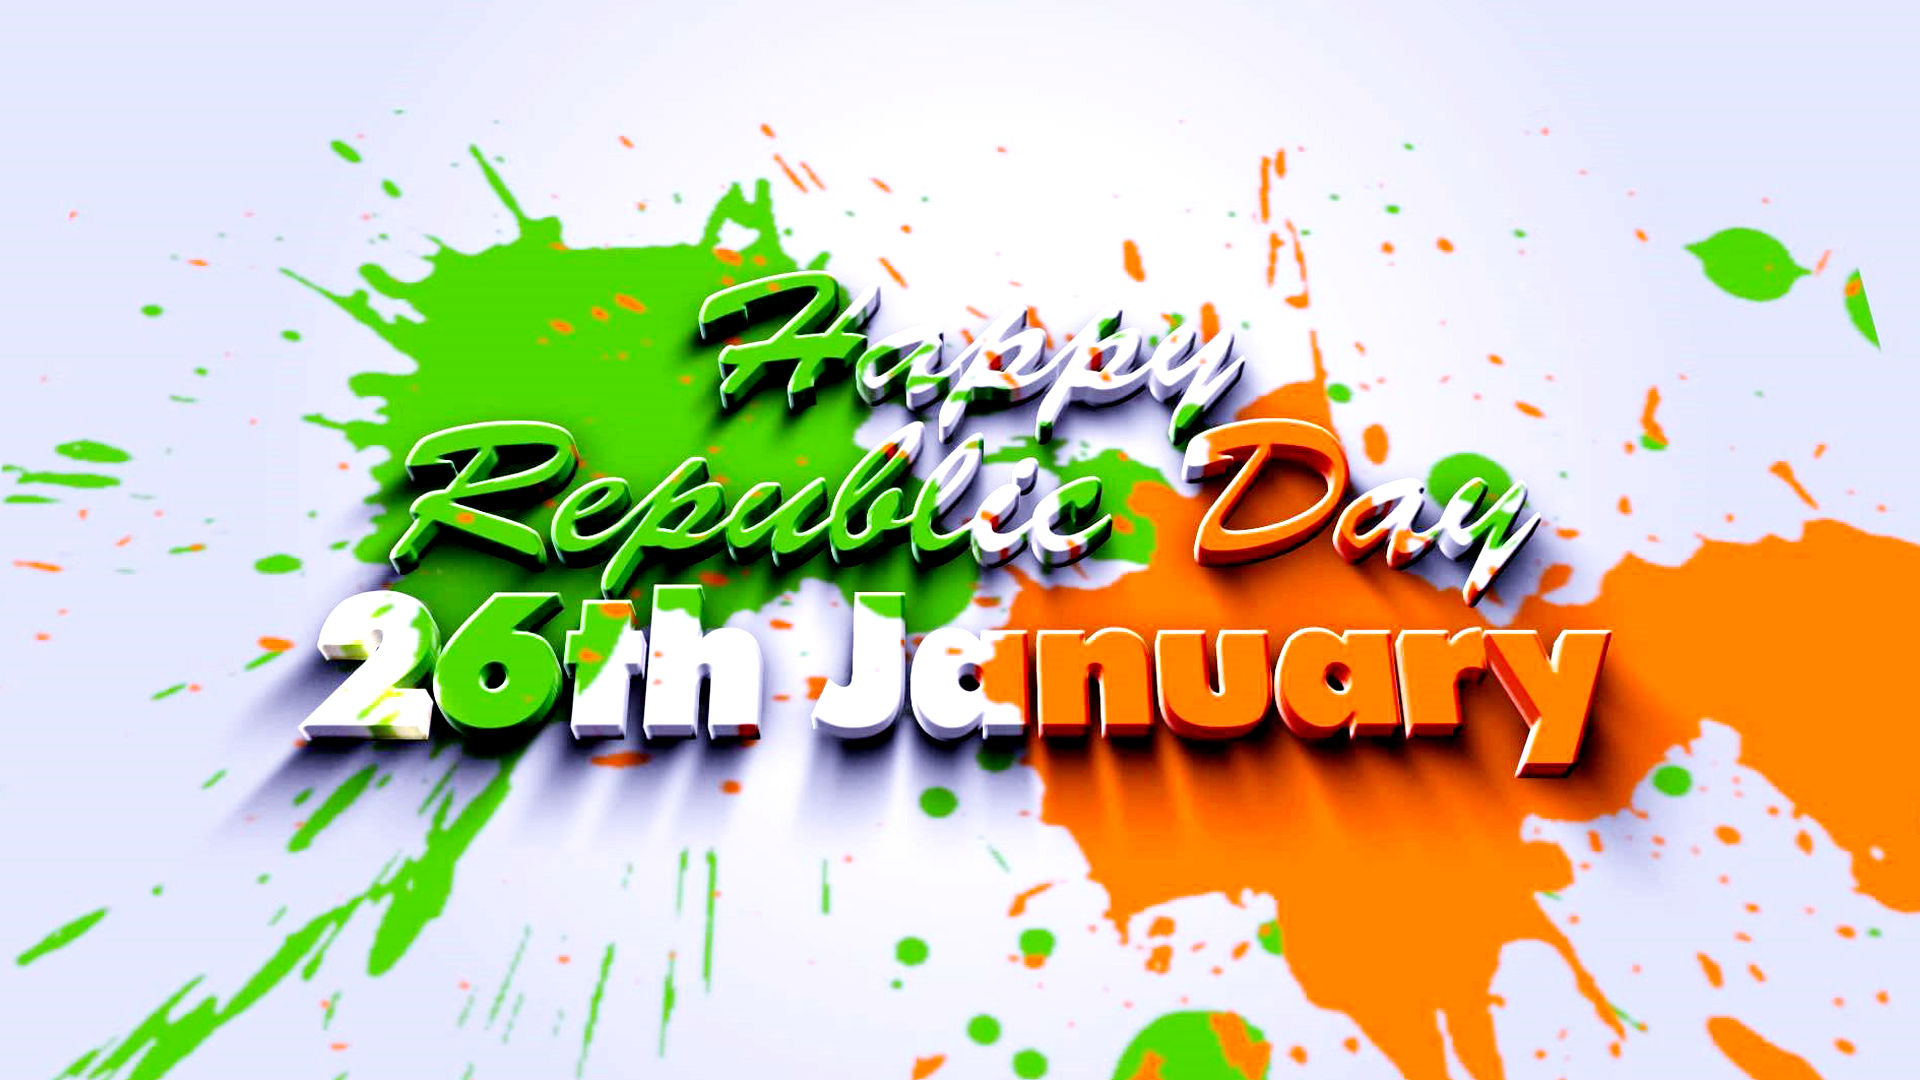 Republic Day 2017 Wallpaper with Abstract Tricolor - 4 Best Happy Republic Day Poetry in English